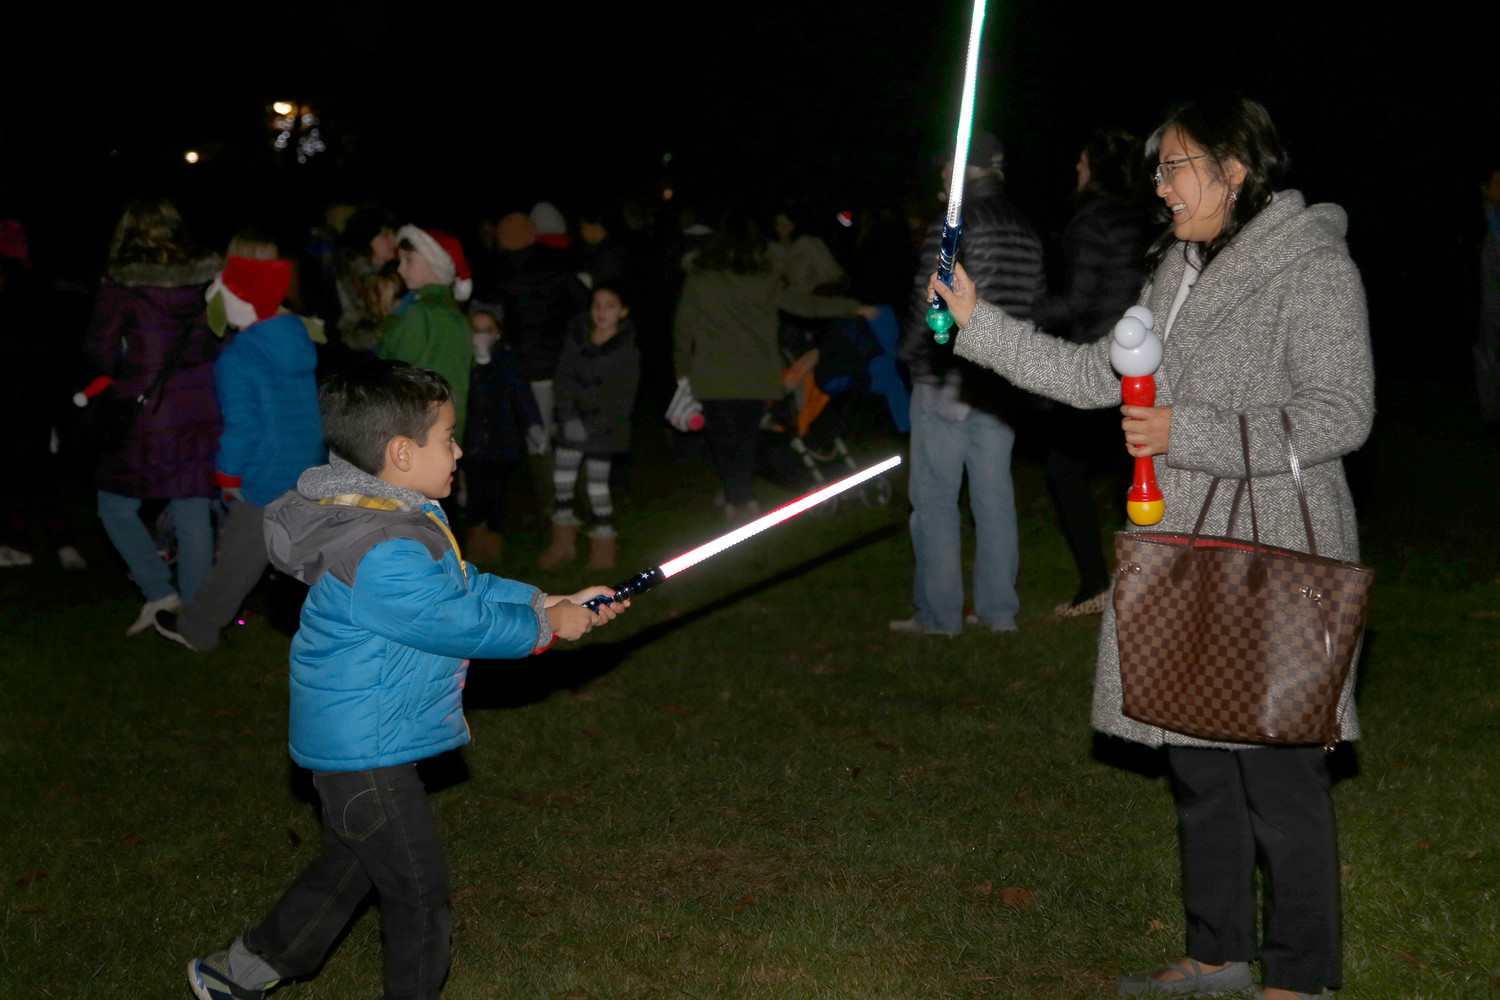 Five-year-old Aiden Deneen dueled with his mother, Lulu.